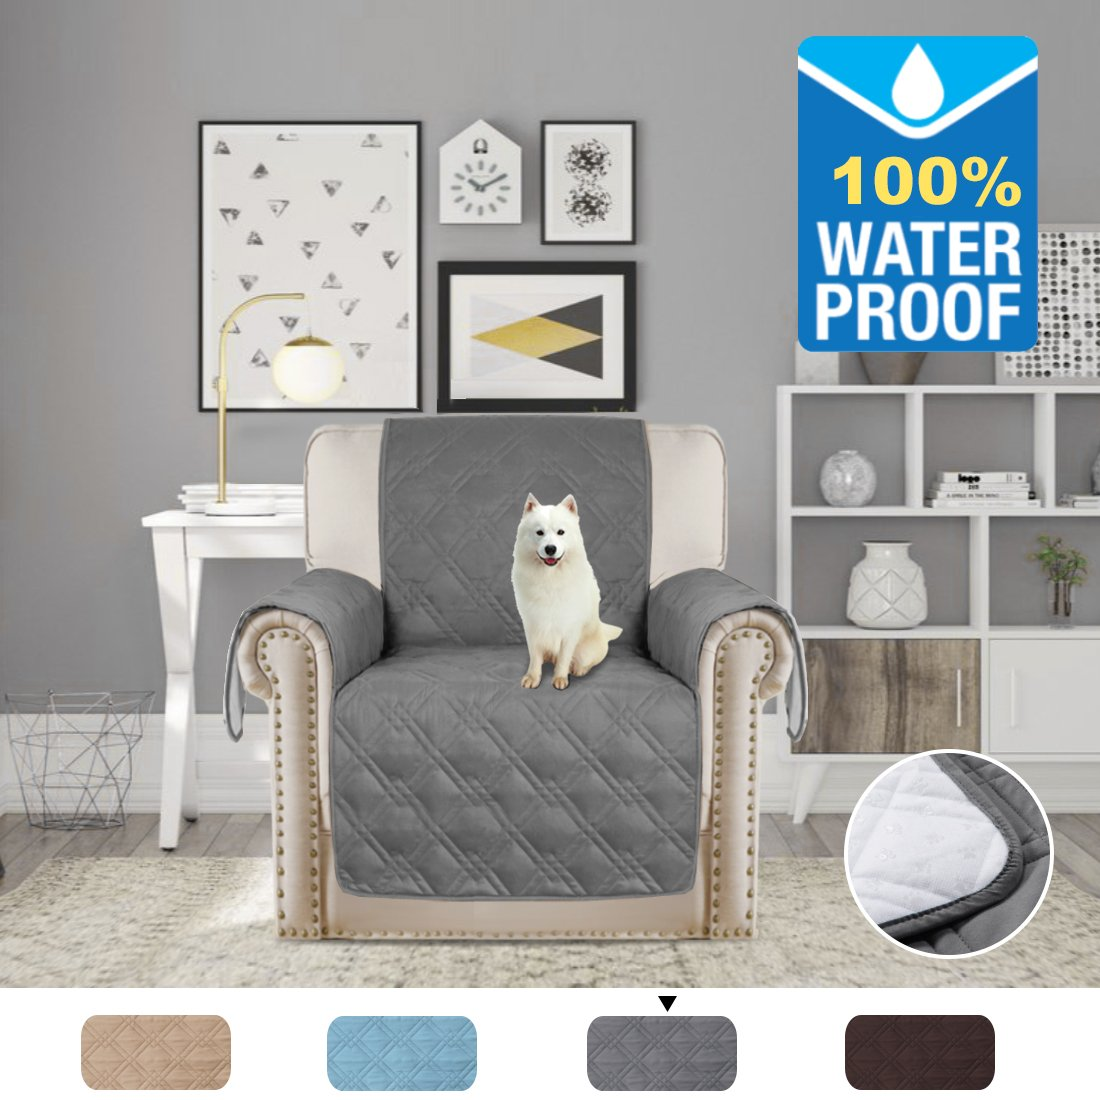 H.VERSAILTEX Pet Friendly Quilted Furniture Protector 100% Prevent Water Microfiber Soft and Luxurious Slipcovers Stay on Place (Recliner: Gray) - 79'' Width by 68'' Length